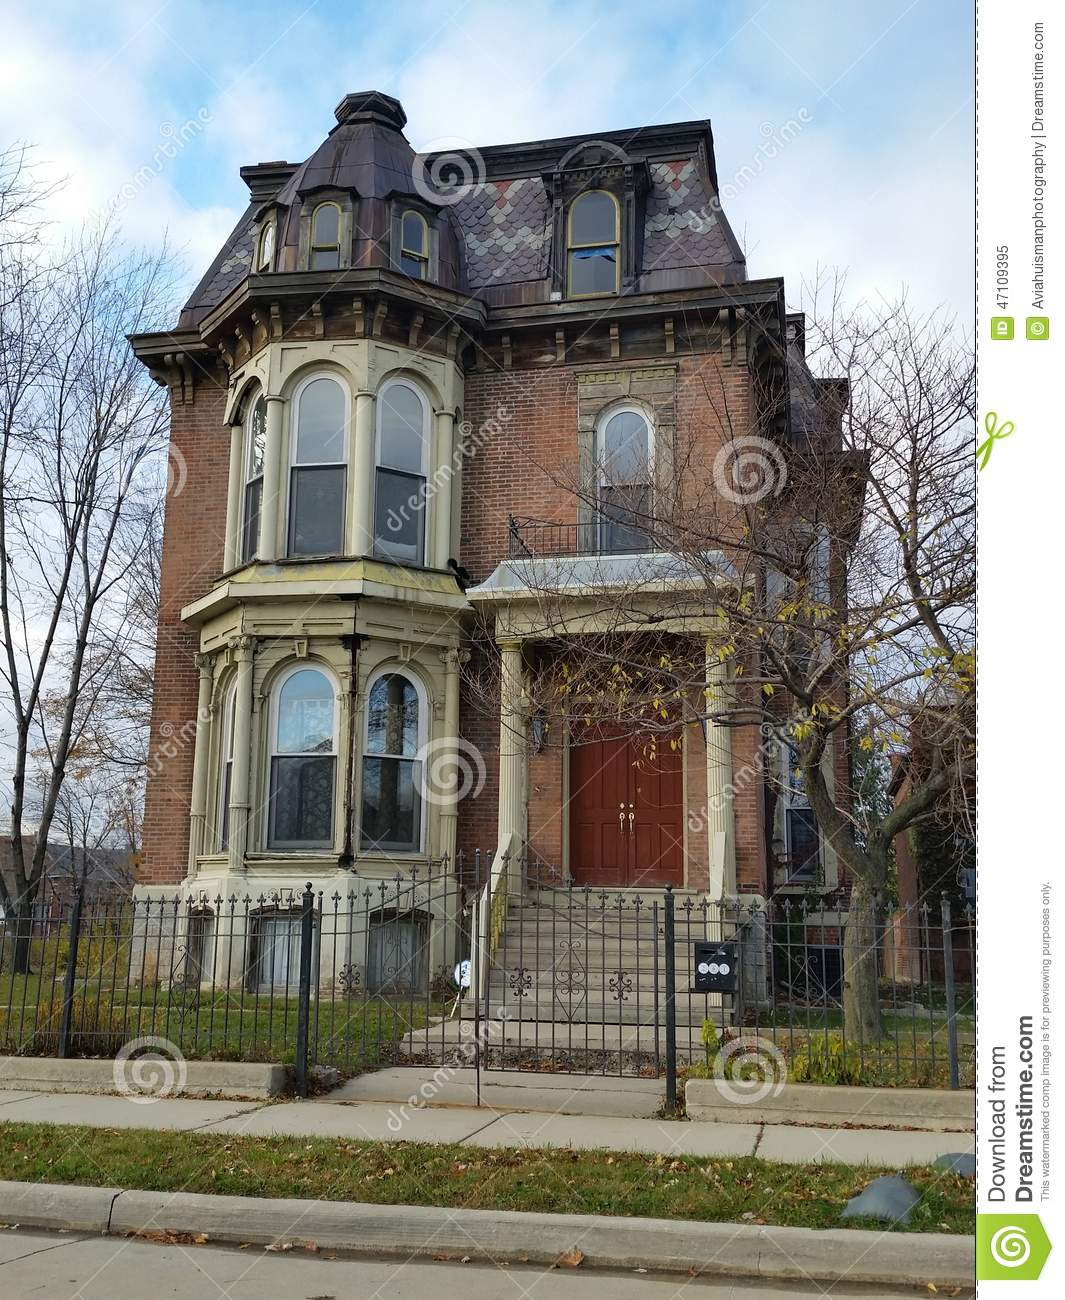 Old Brick Victorian Style Home In Downtown Detroit Michigan Many Of The Surrounding Homes Have Been Abandoned Or Demolished